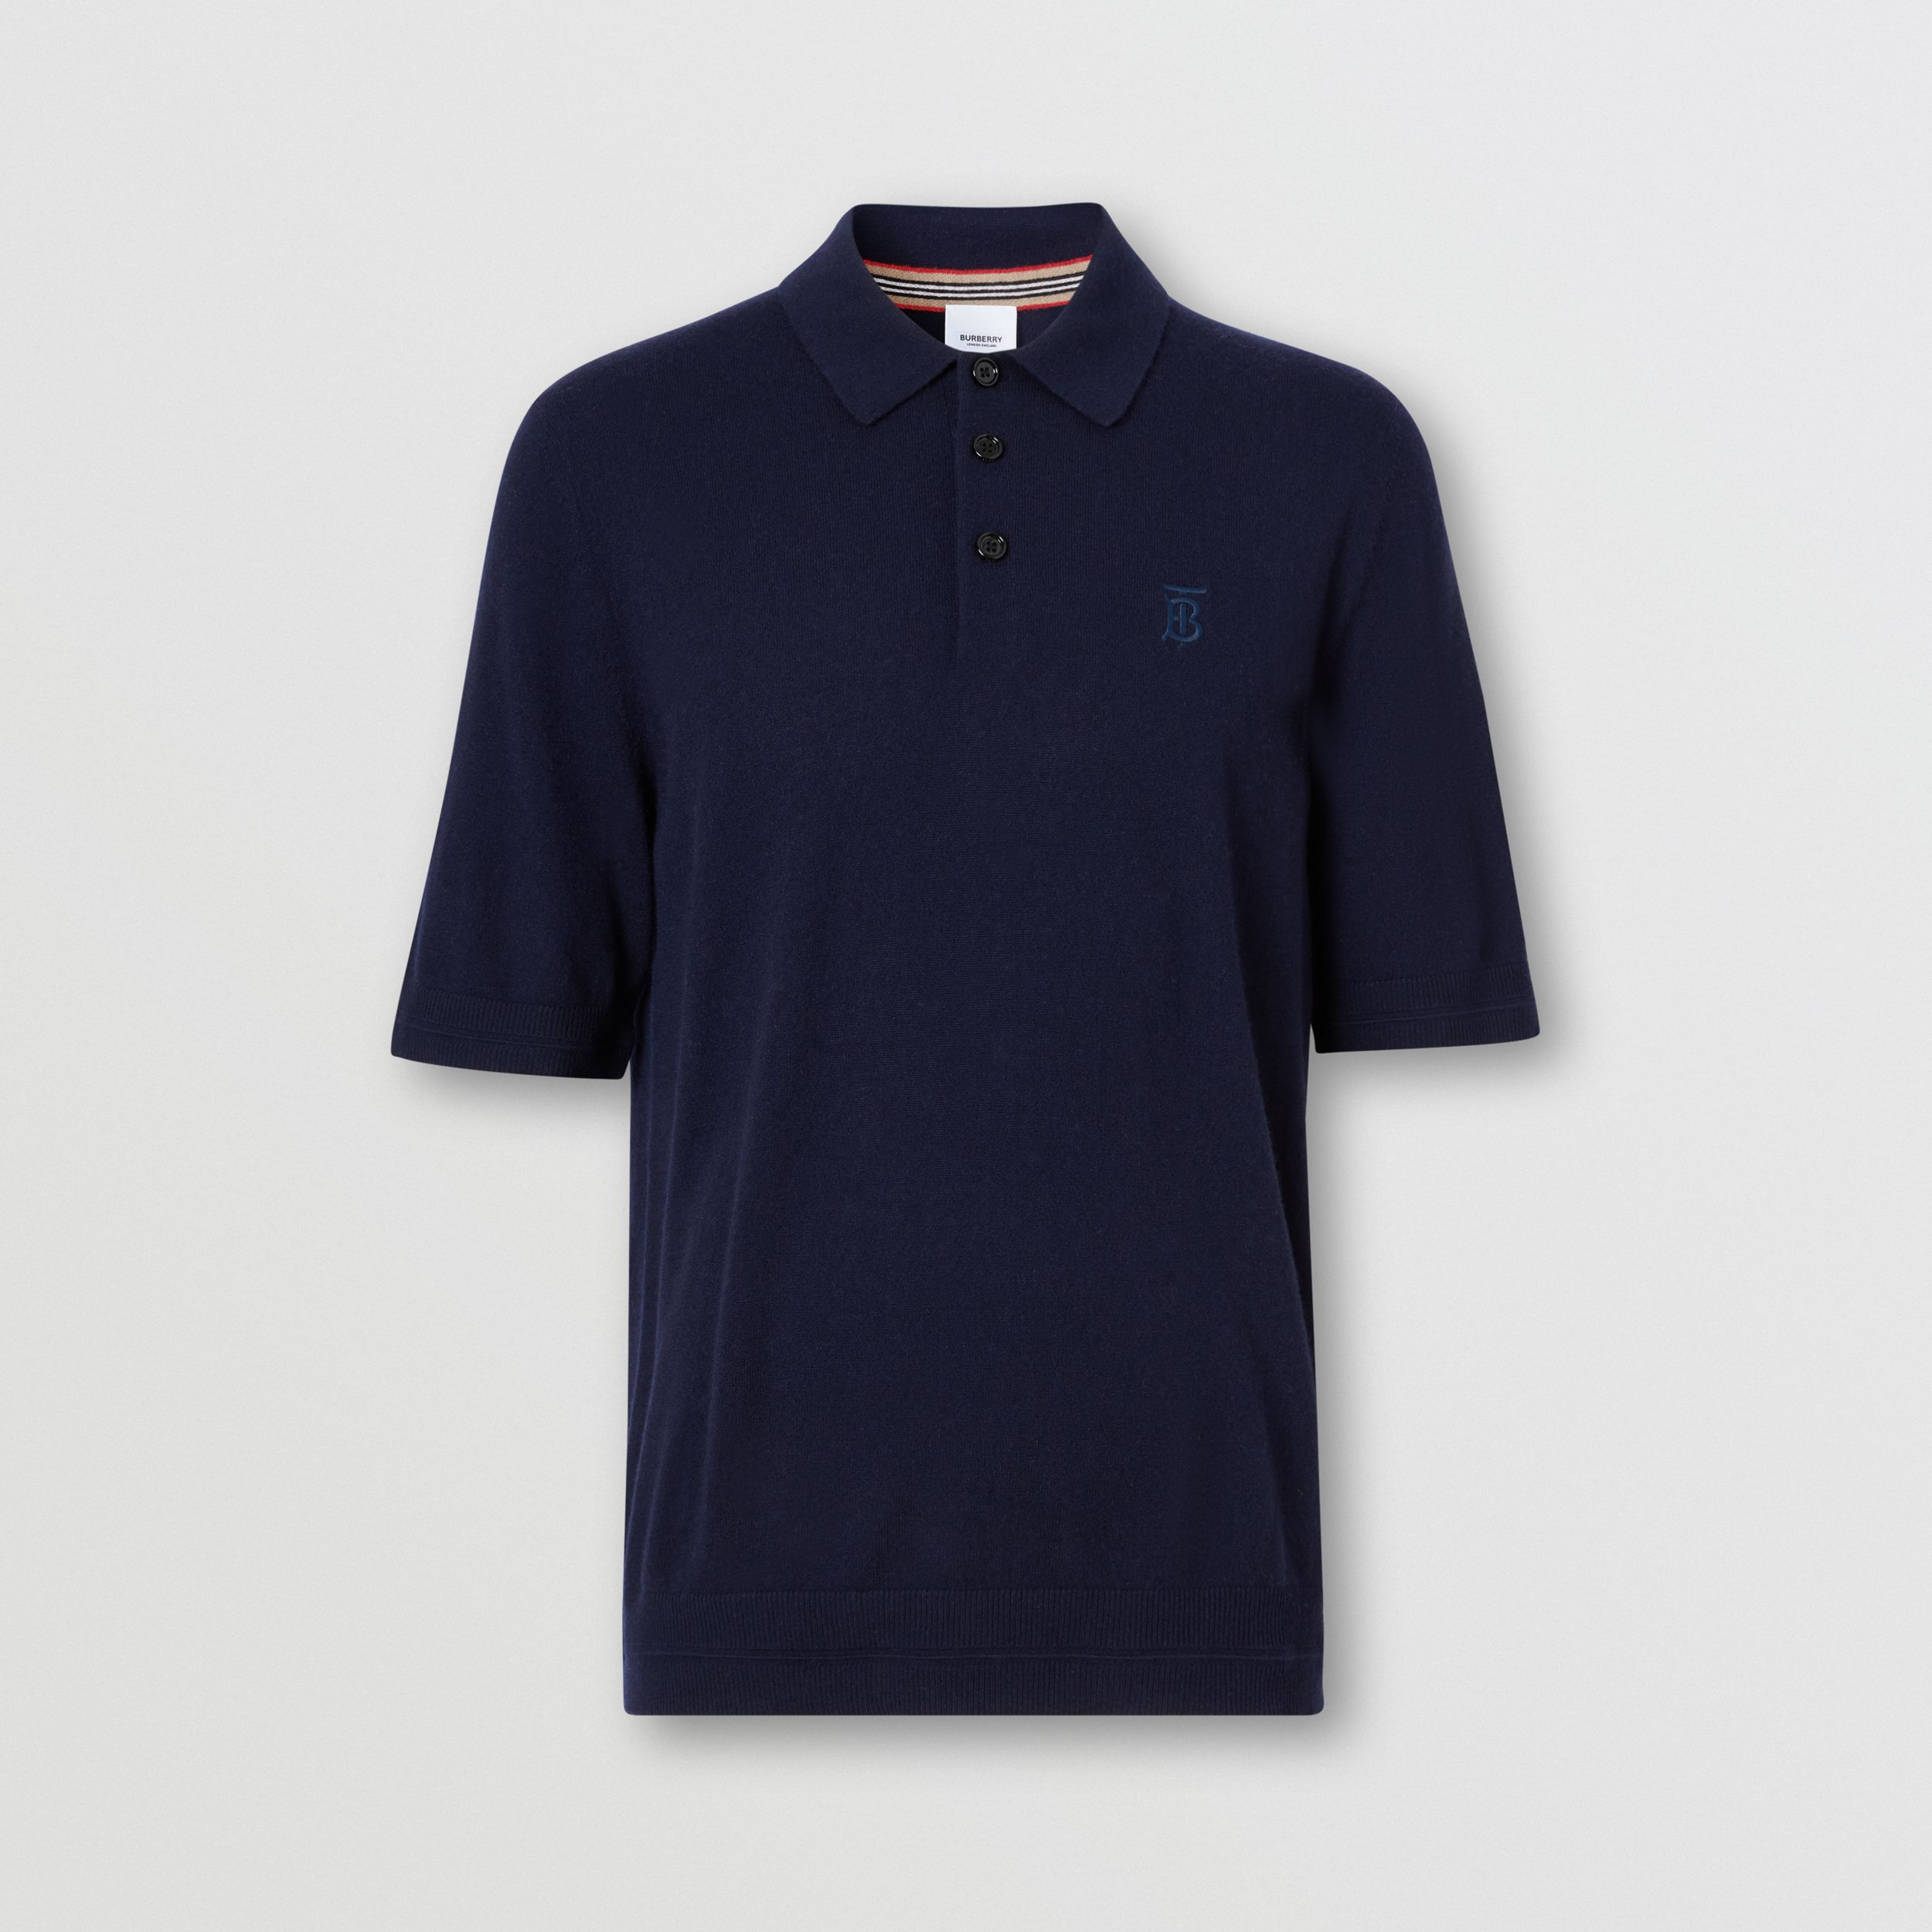 Monogram Motif Cashmere Polo Shirt in Navy - Men | Burberry - 4